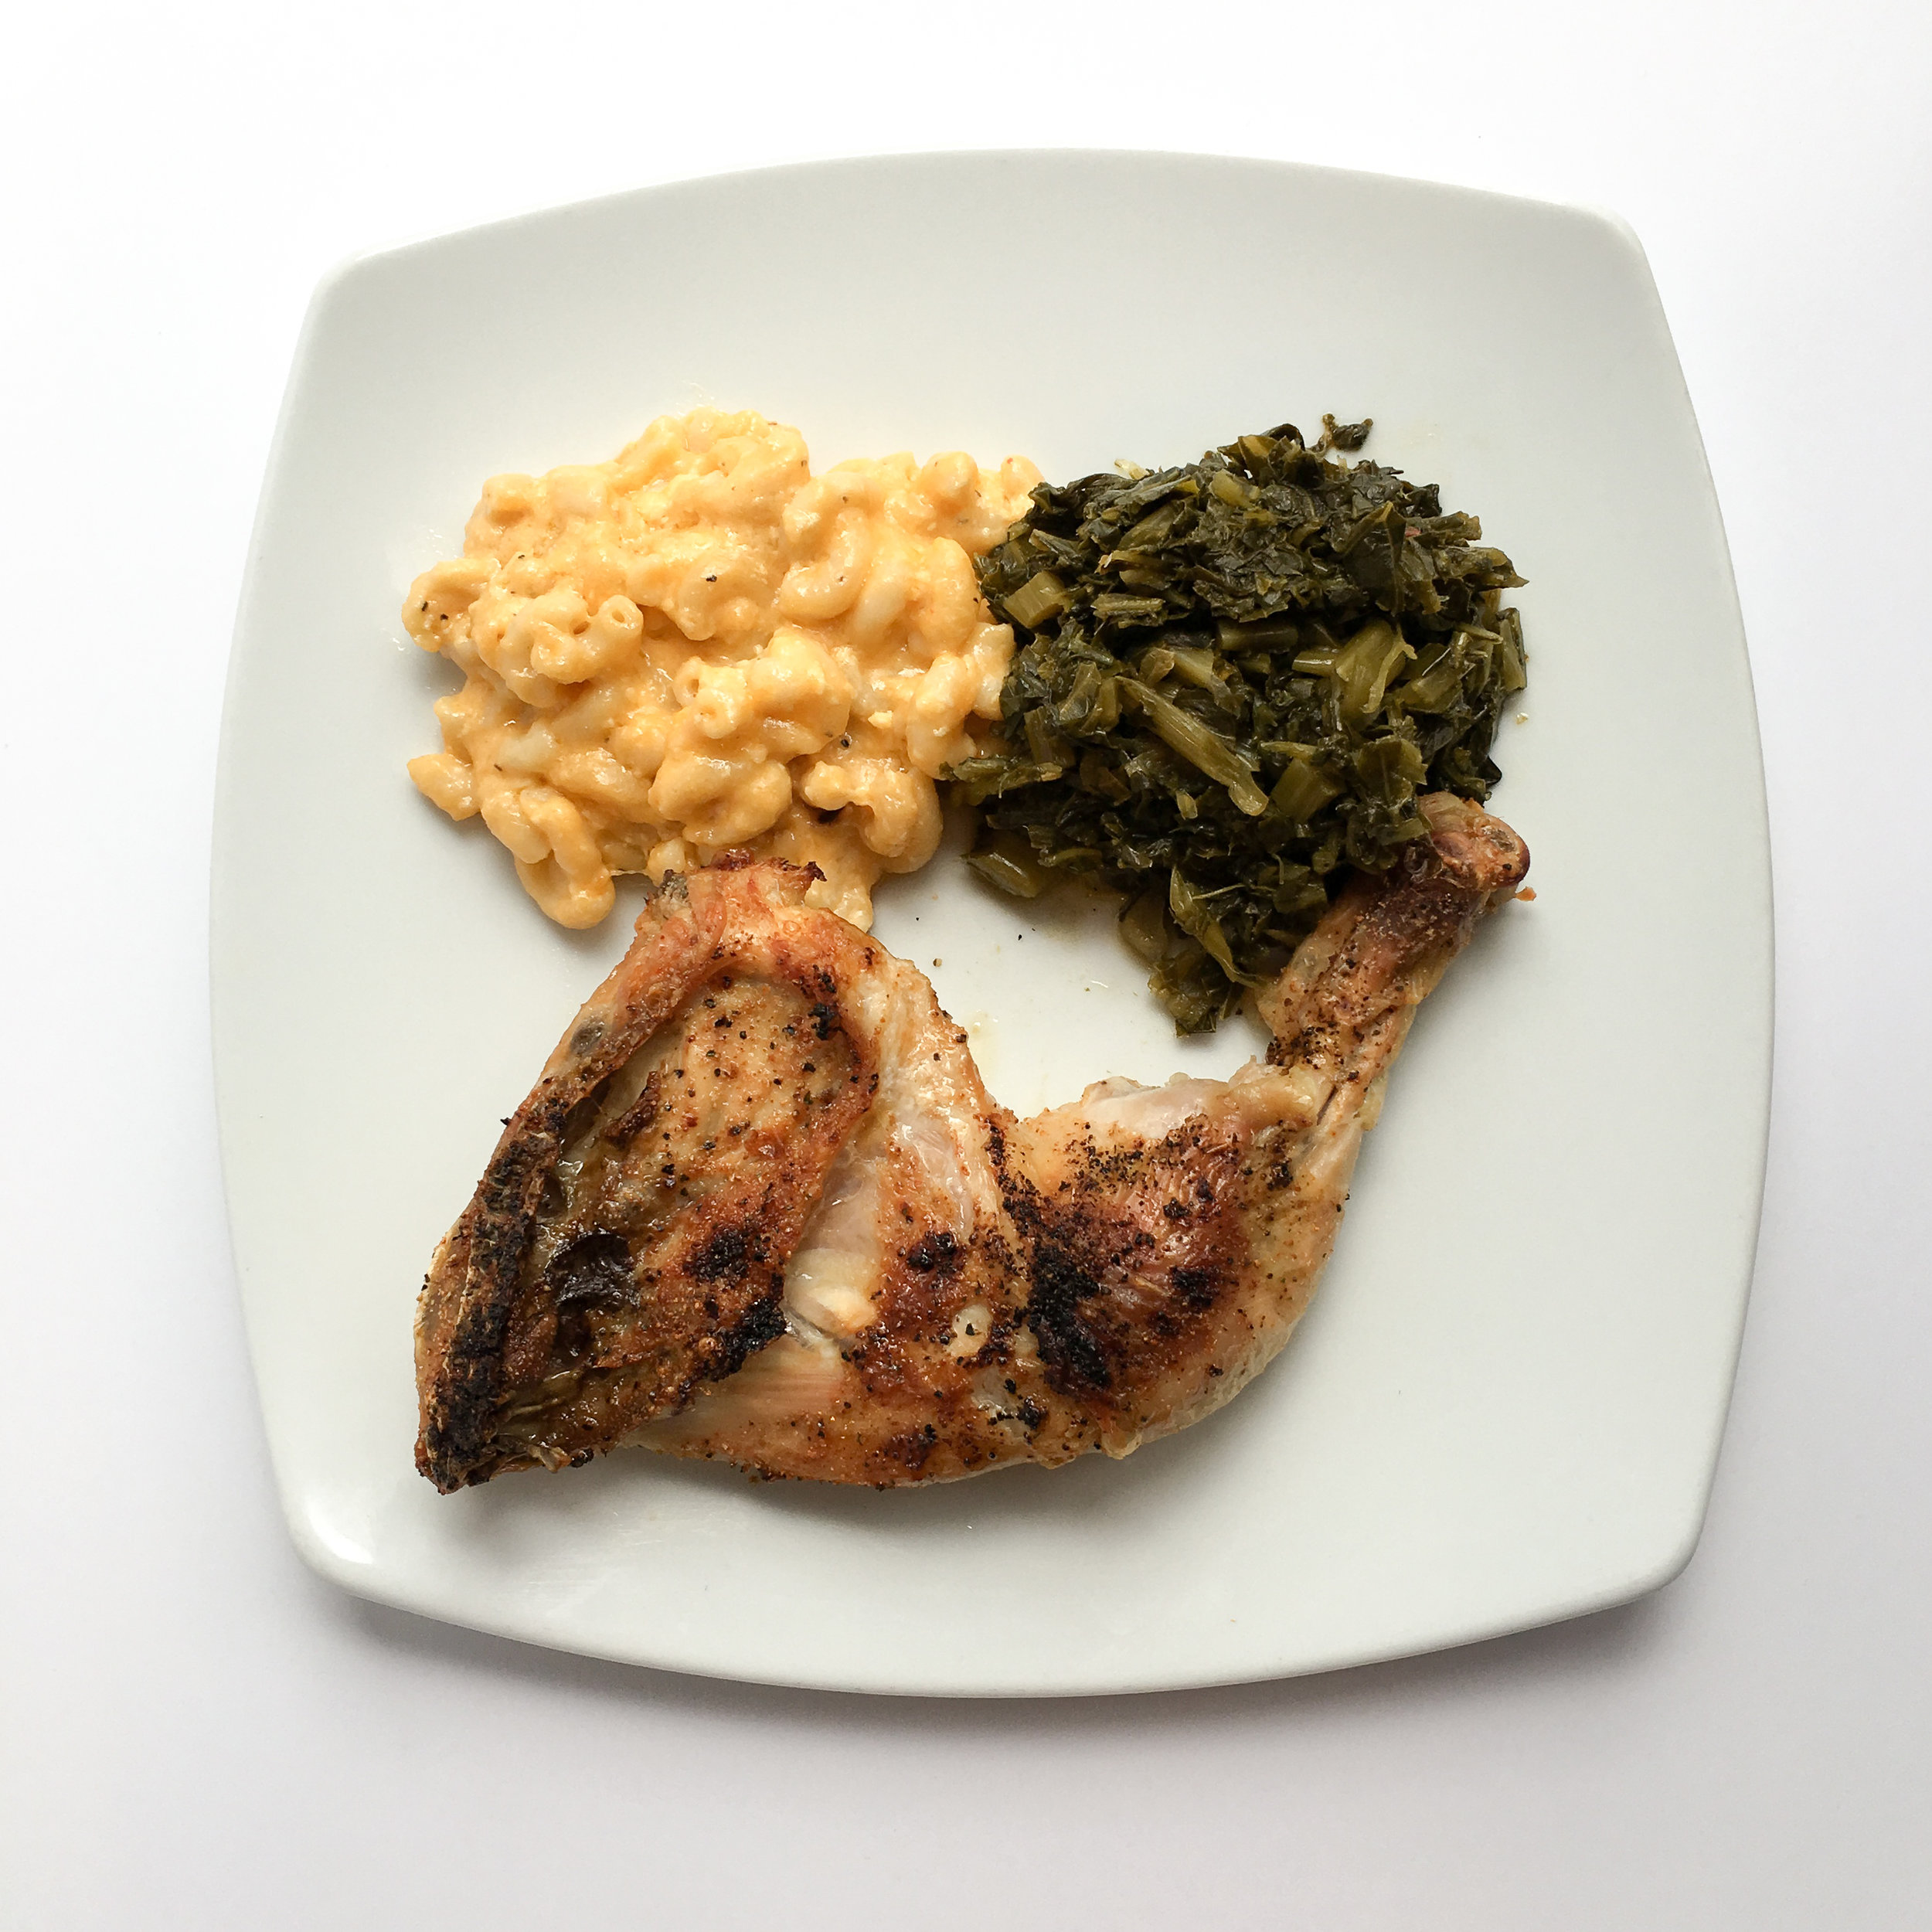 Broiled Chicken, Backed Mac and Cheese and Collard Greens.